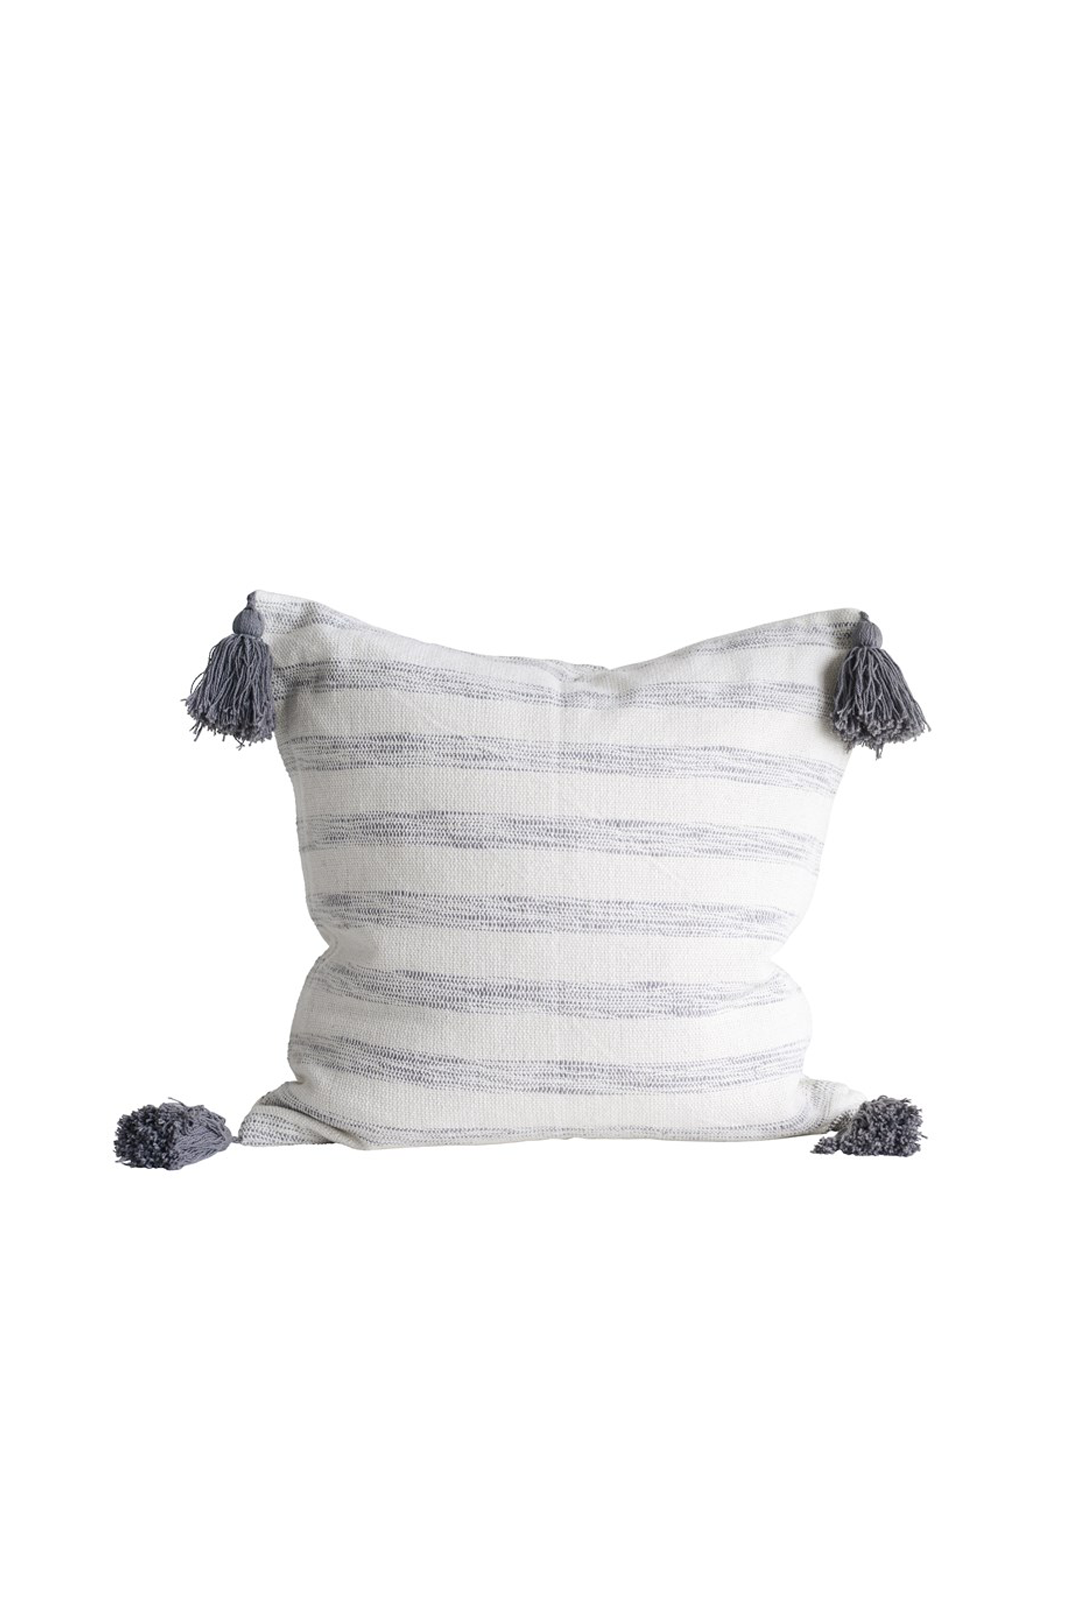 "18"" Square Striped Pillow w/ Tassels, White & Grey"